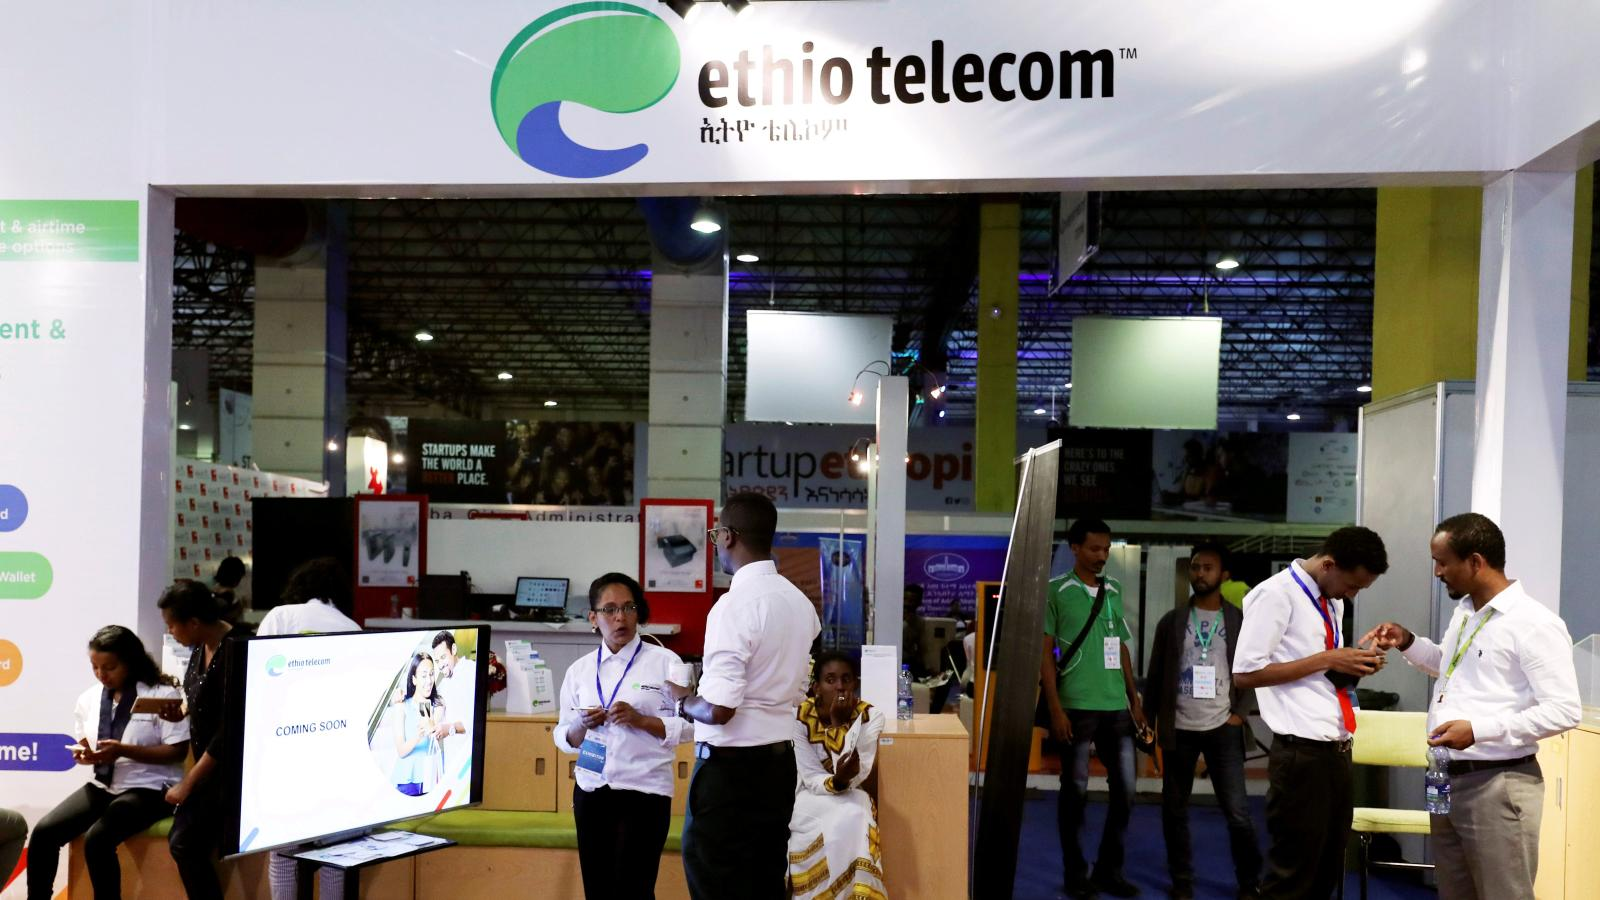 Ethiopia telco licenses raises questions on privacy, shutdowns